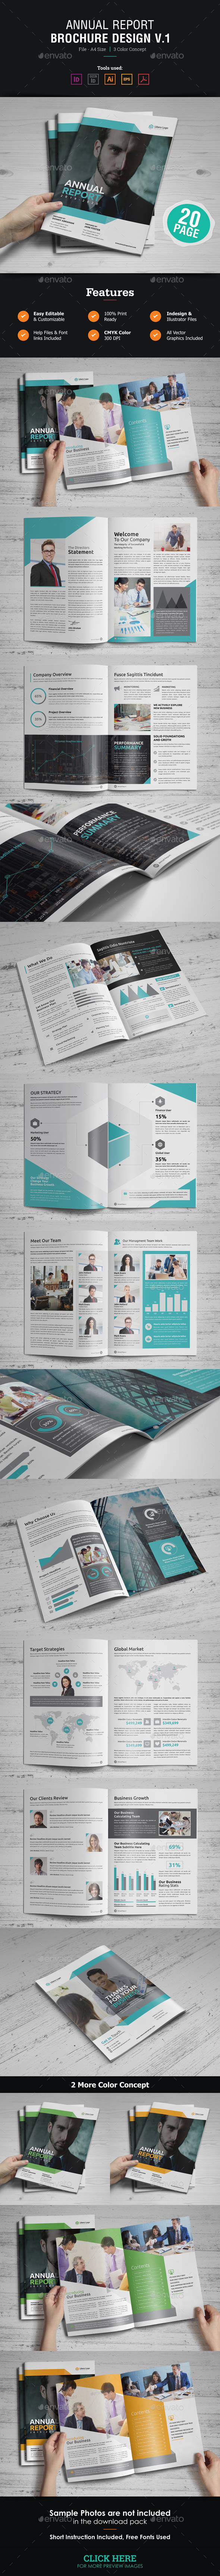 Annual Report Design - Corporate Brochures